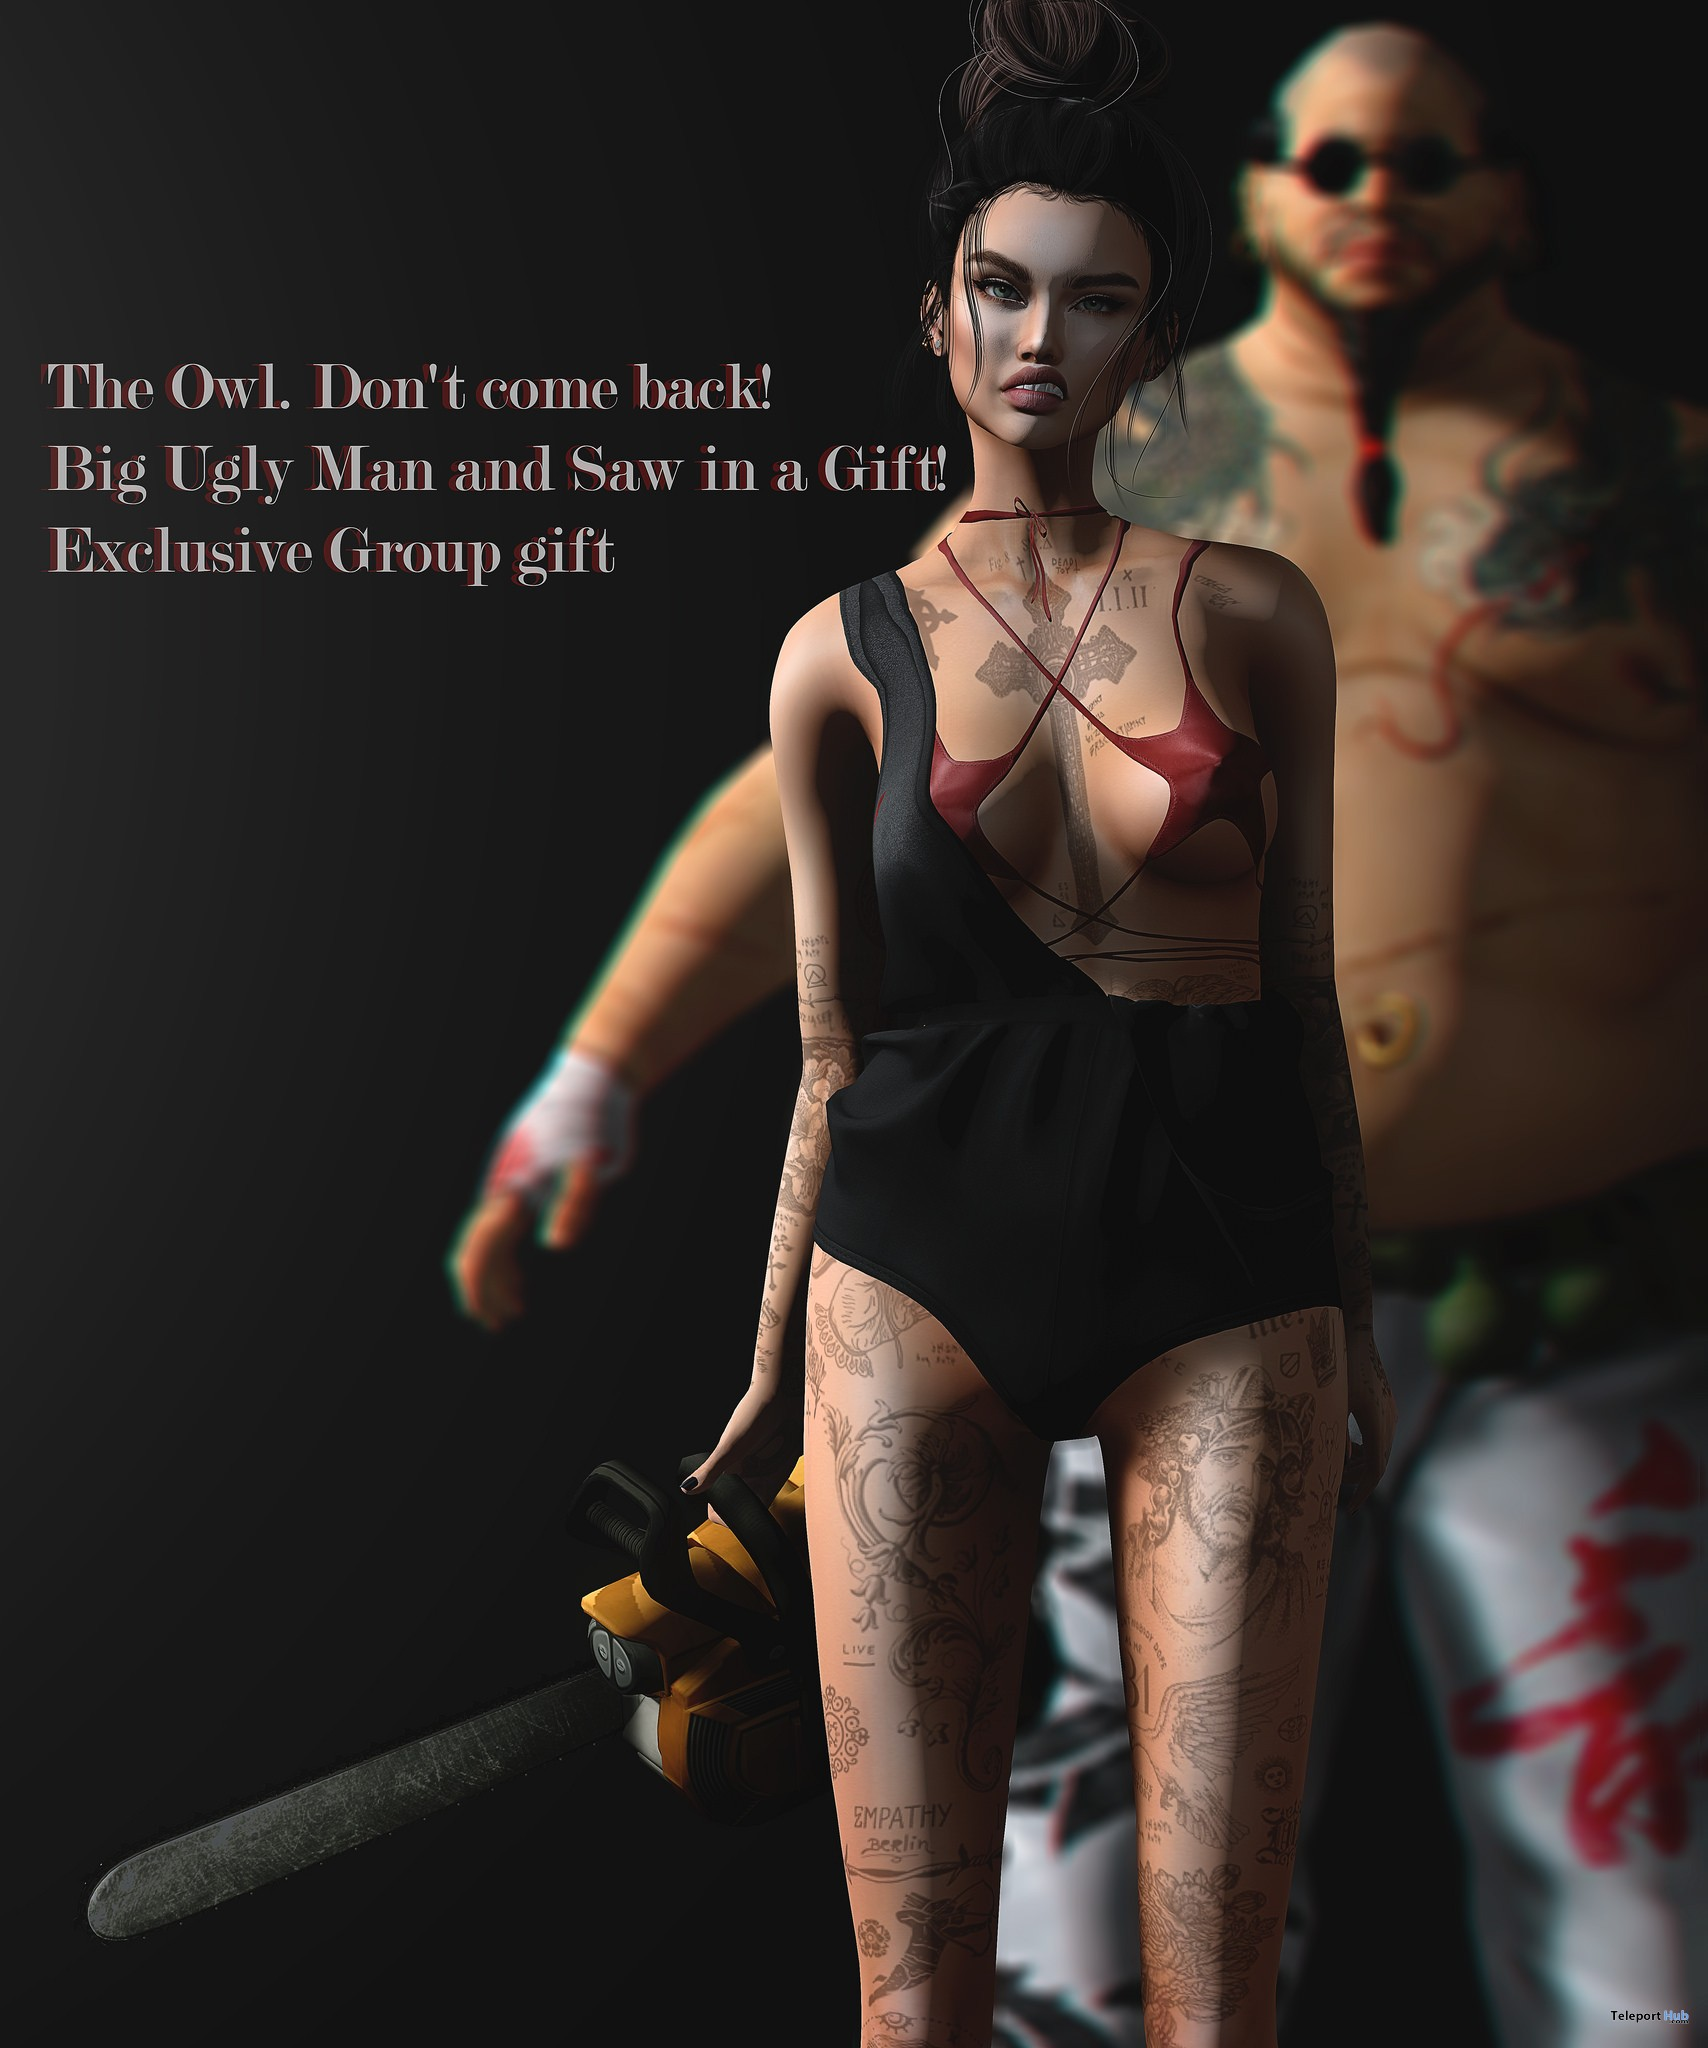 Don't Come Back Pose With Props Halloween 2017 Gift by The Owl - Teleport Hub - teleporthub.com